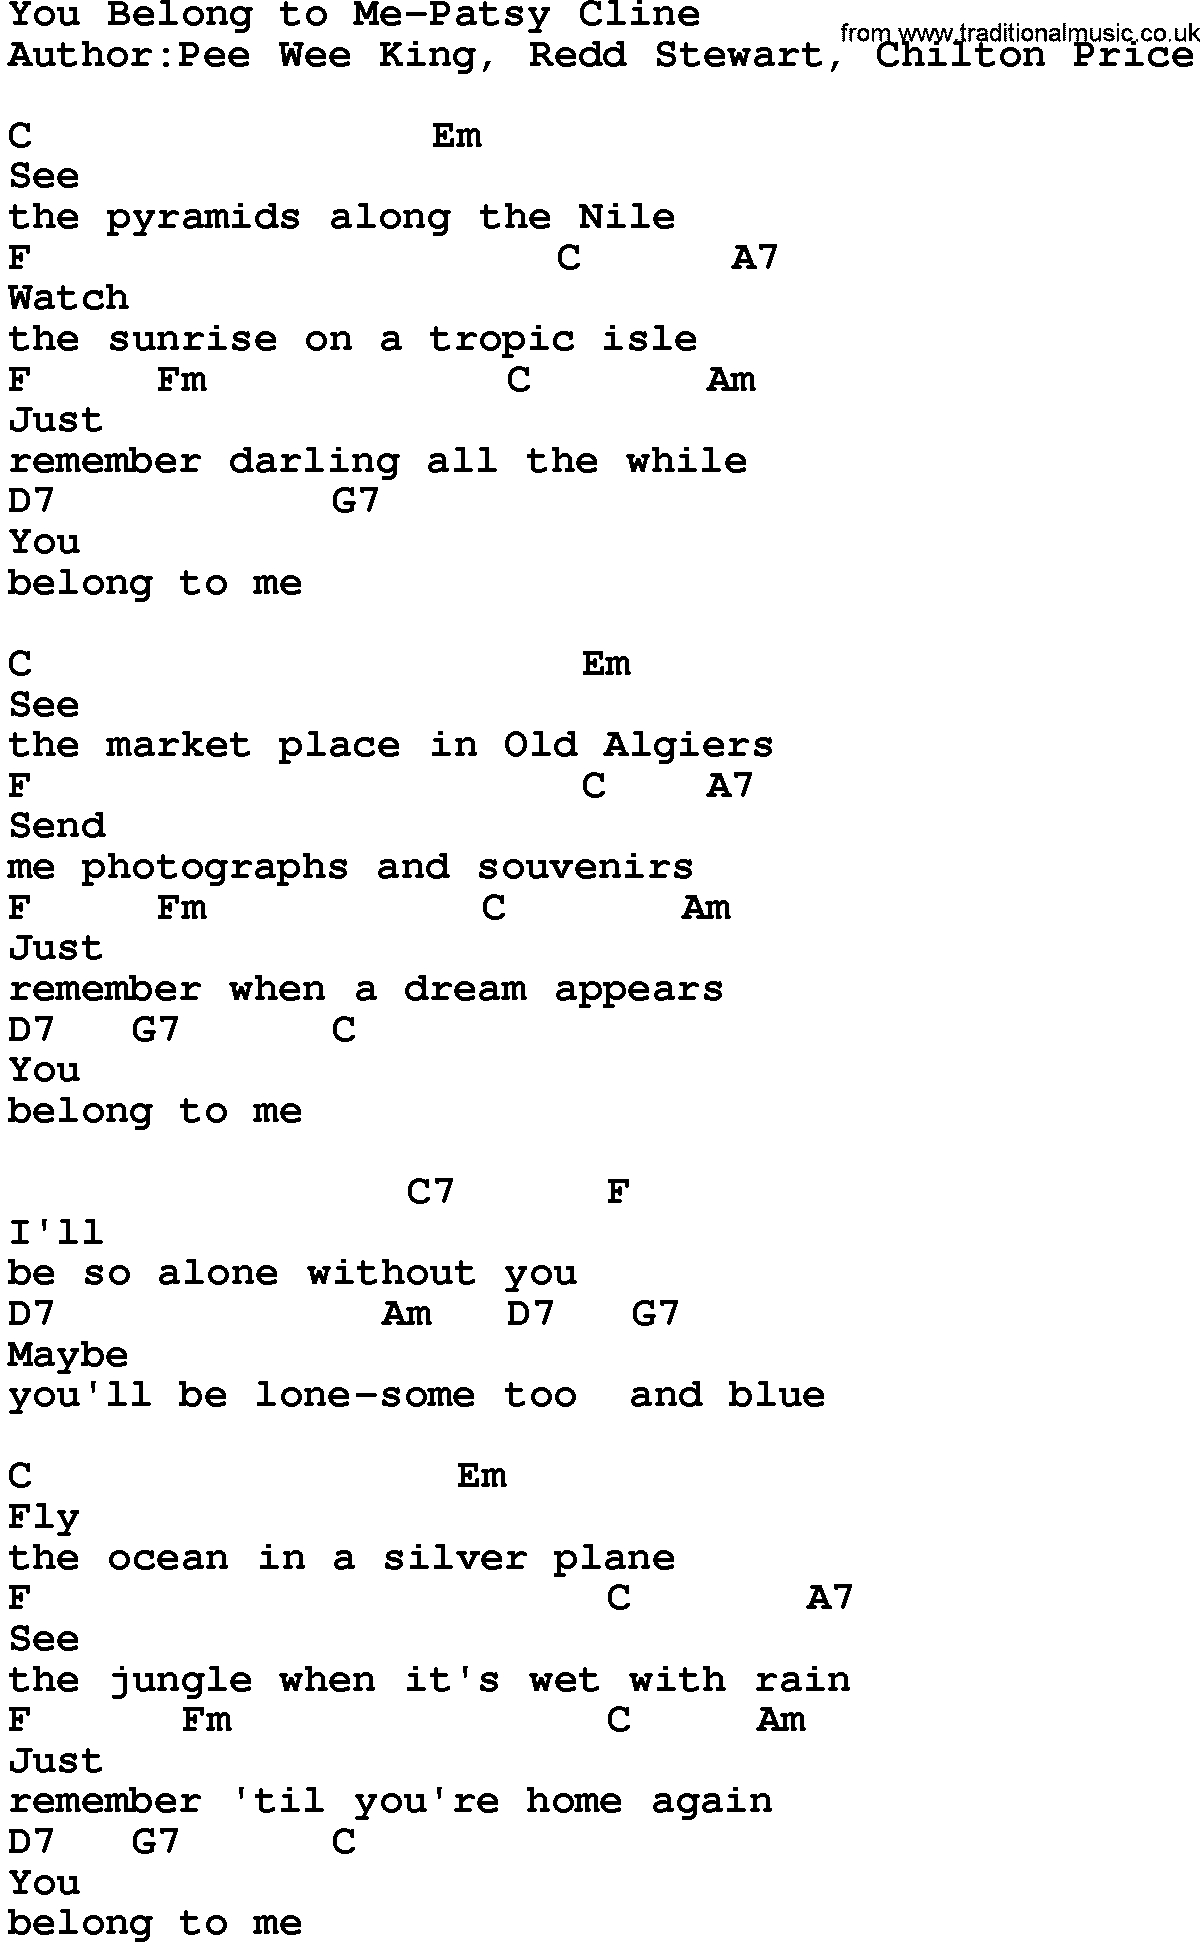 You Belong With Me Chords Country Musicyou Belong To Me Patsy Cline Lyrics And Chords